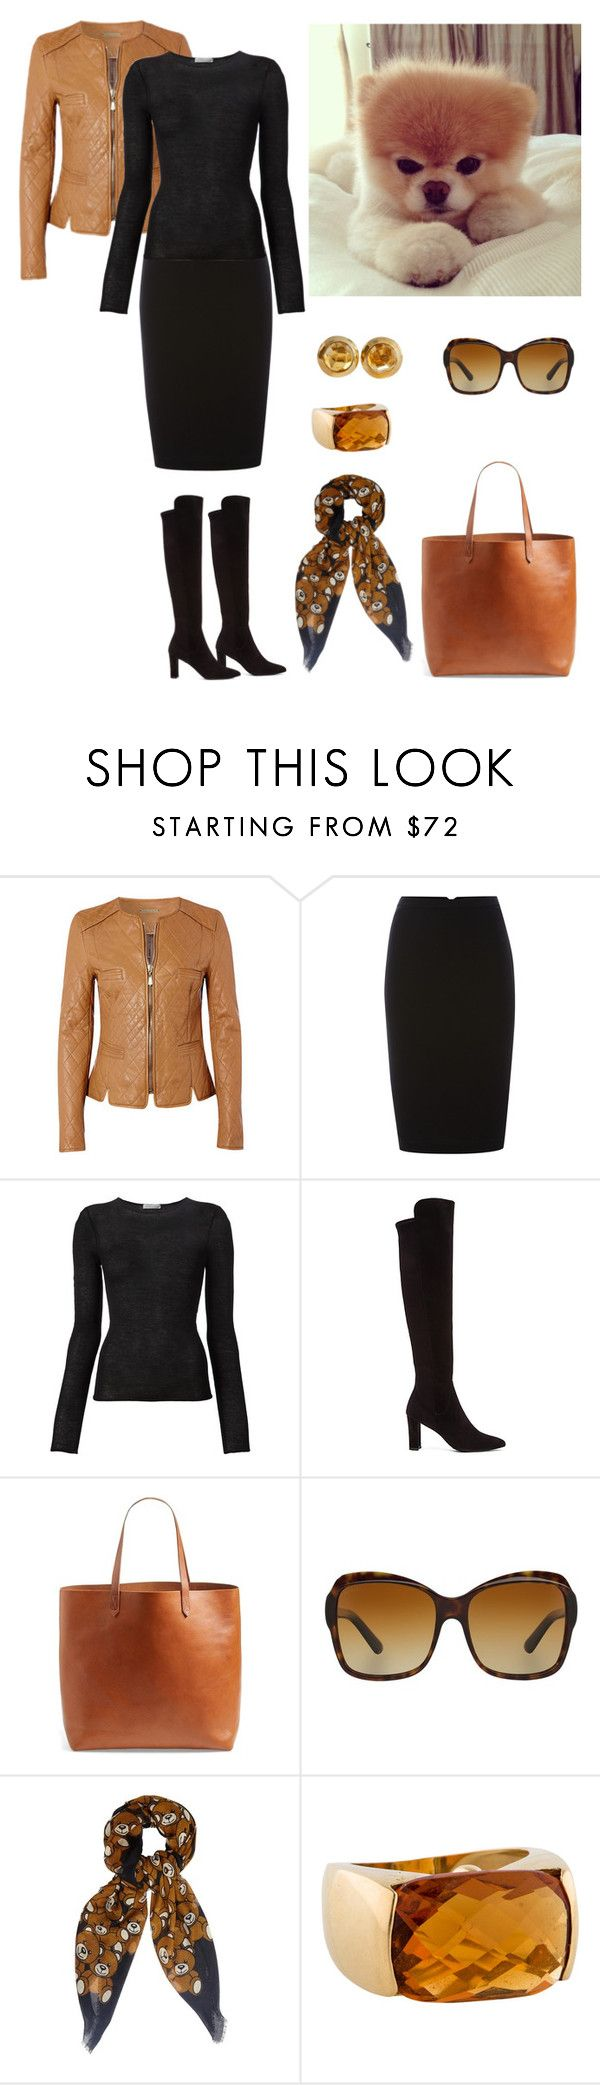 """""""Amber meets Black"""" by dezaval ❤ liked on Polyvore featuring Richards Radcliffe, Pied a Terre, Denis Colomb, Stuart Weitzman, Madewell, Bulgari, Moschino and Pomellato"""